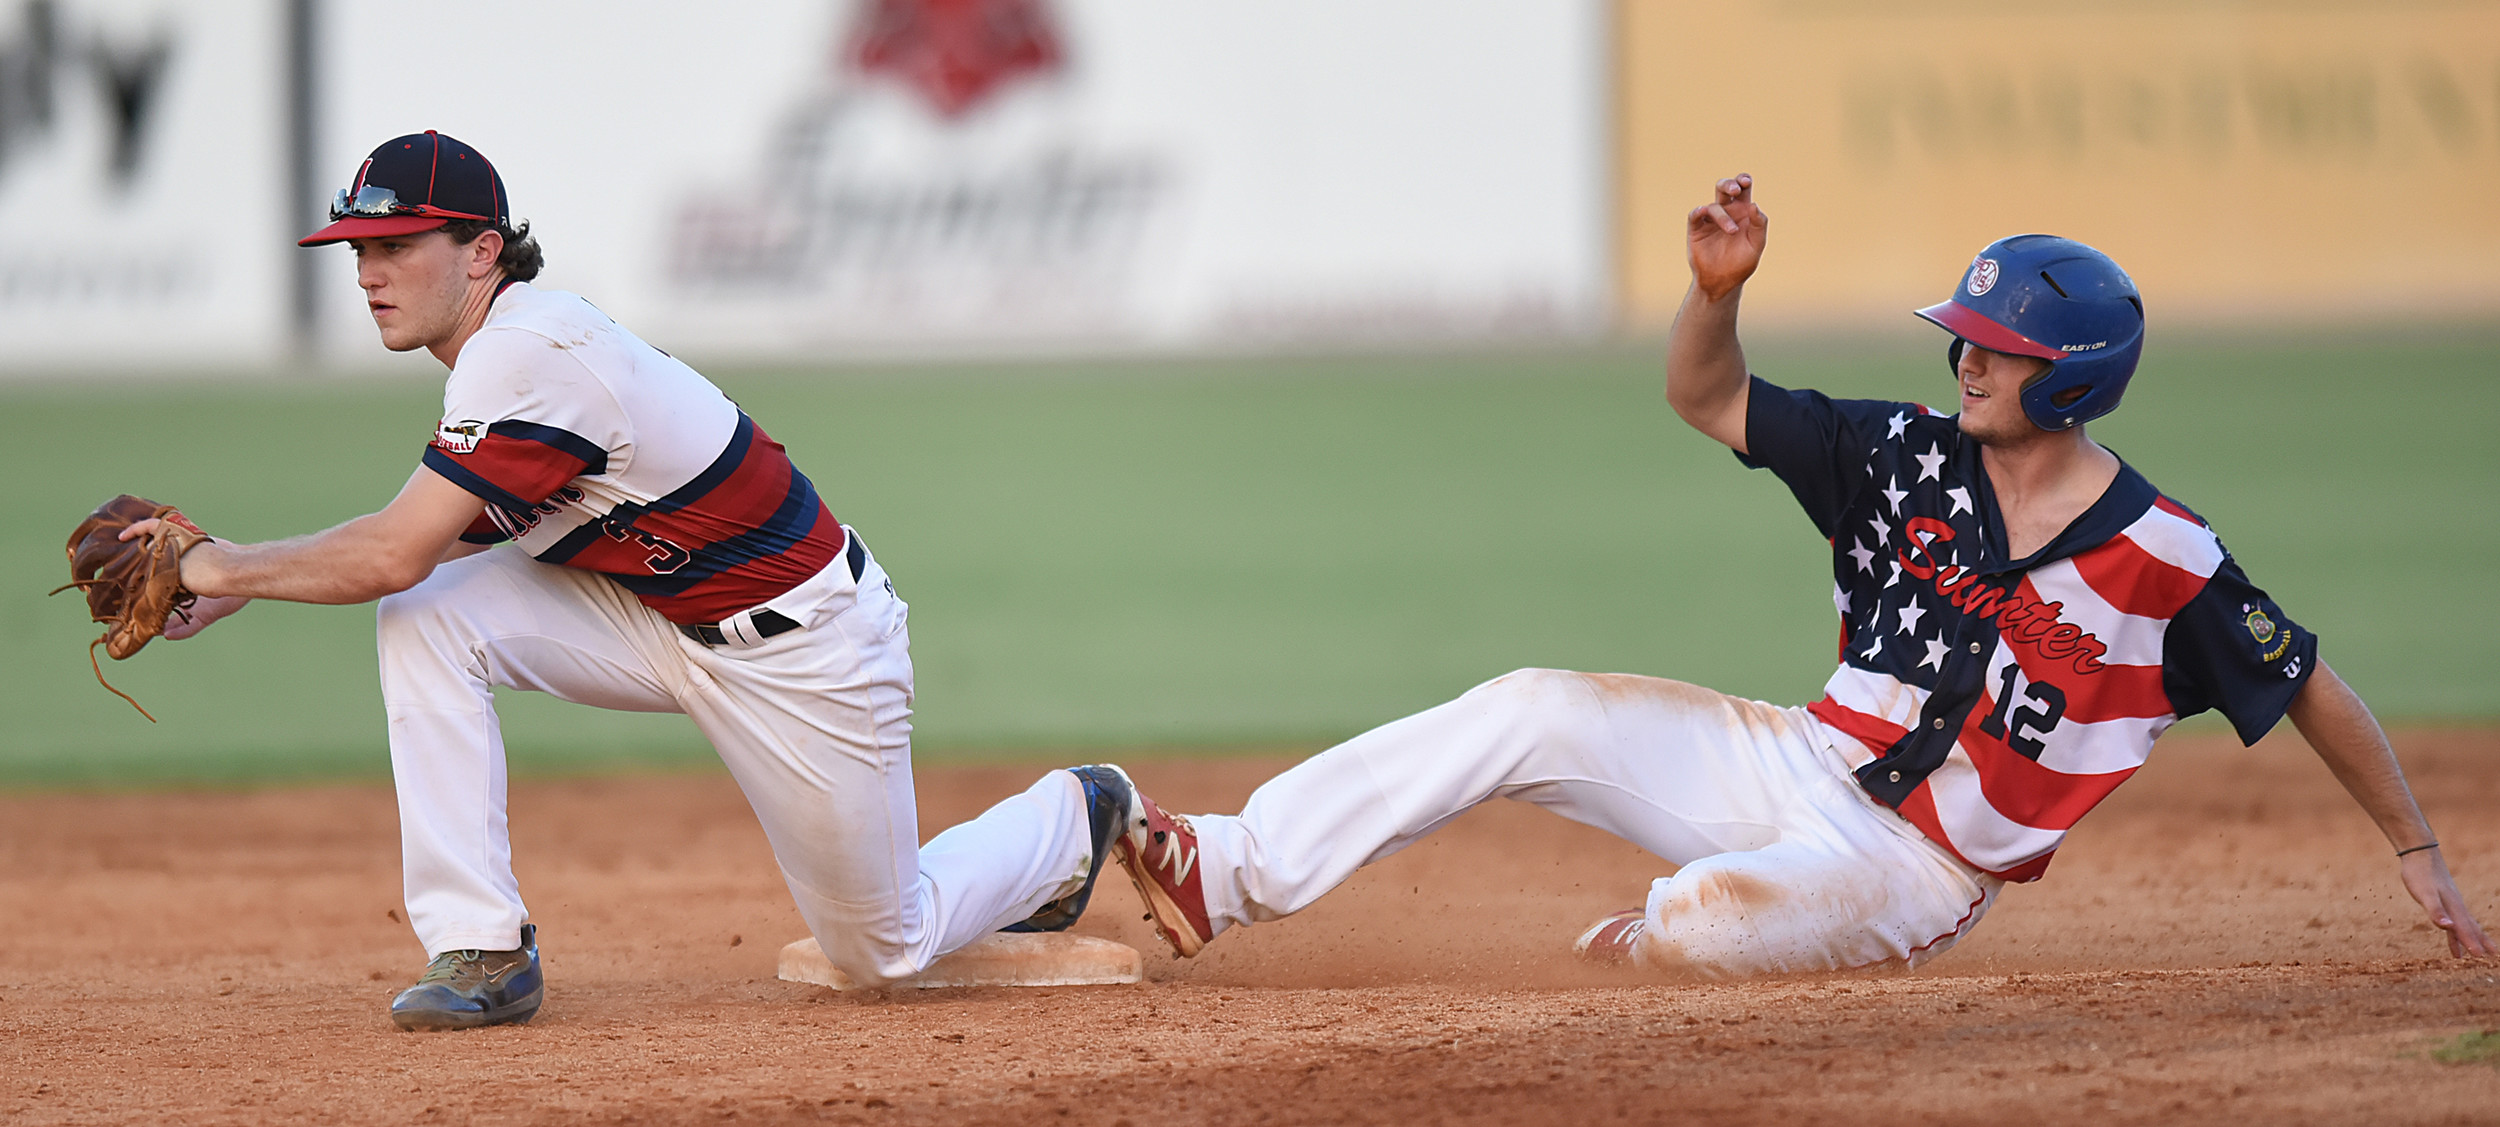 Lexington second baseman Dalton Lansdowne makes a catch to force out Sumter's Dawson Price at second in the P-15's 12-3 win on Friday at Riley Park. The P-15's swept the best-of-5 second-round state playoffs series.